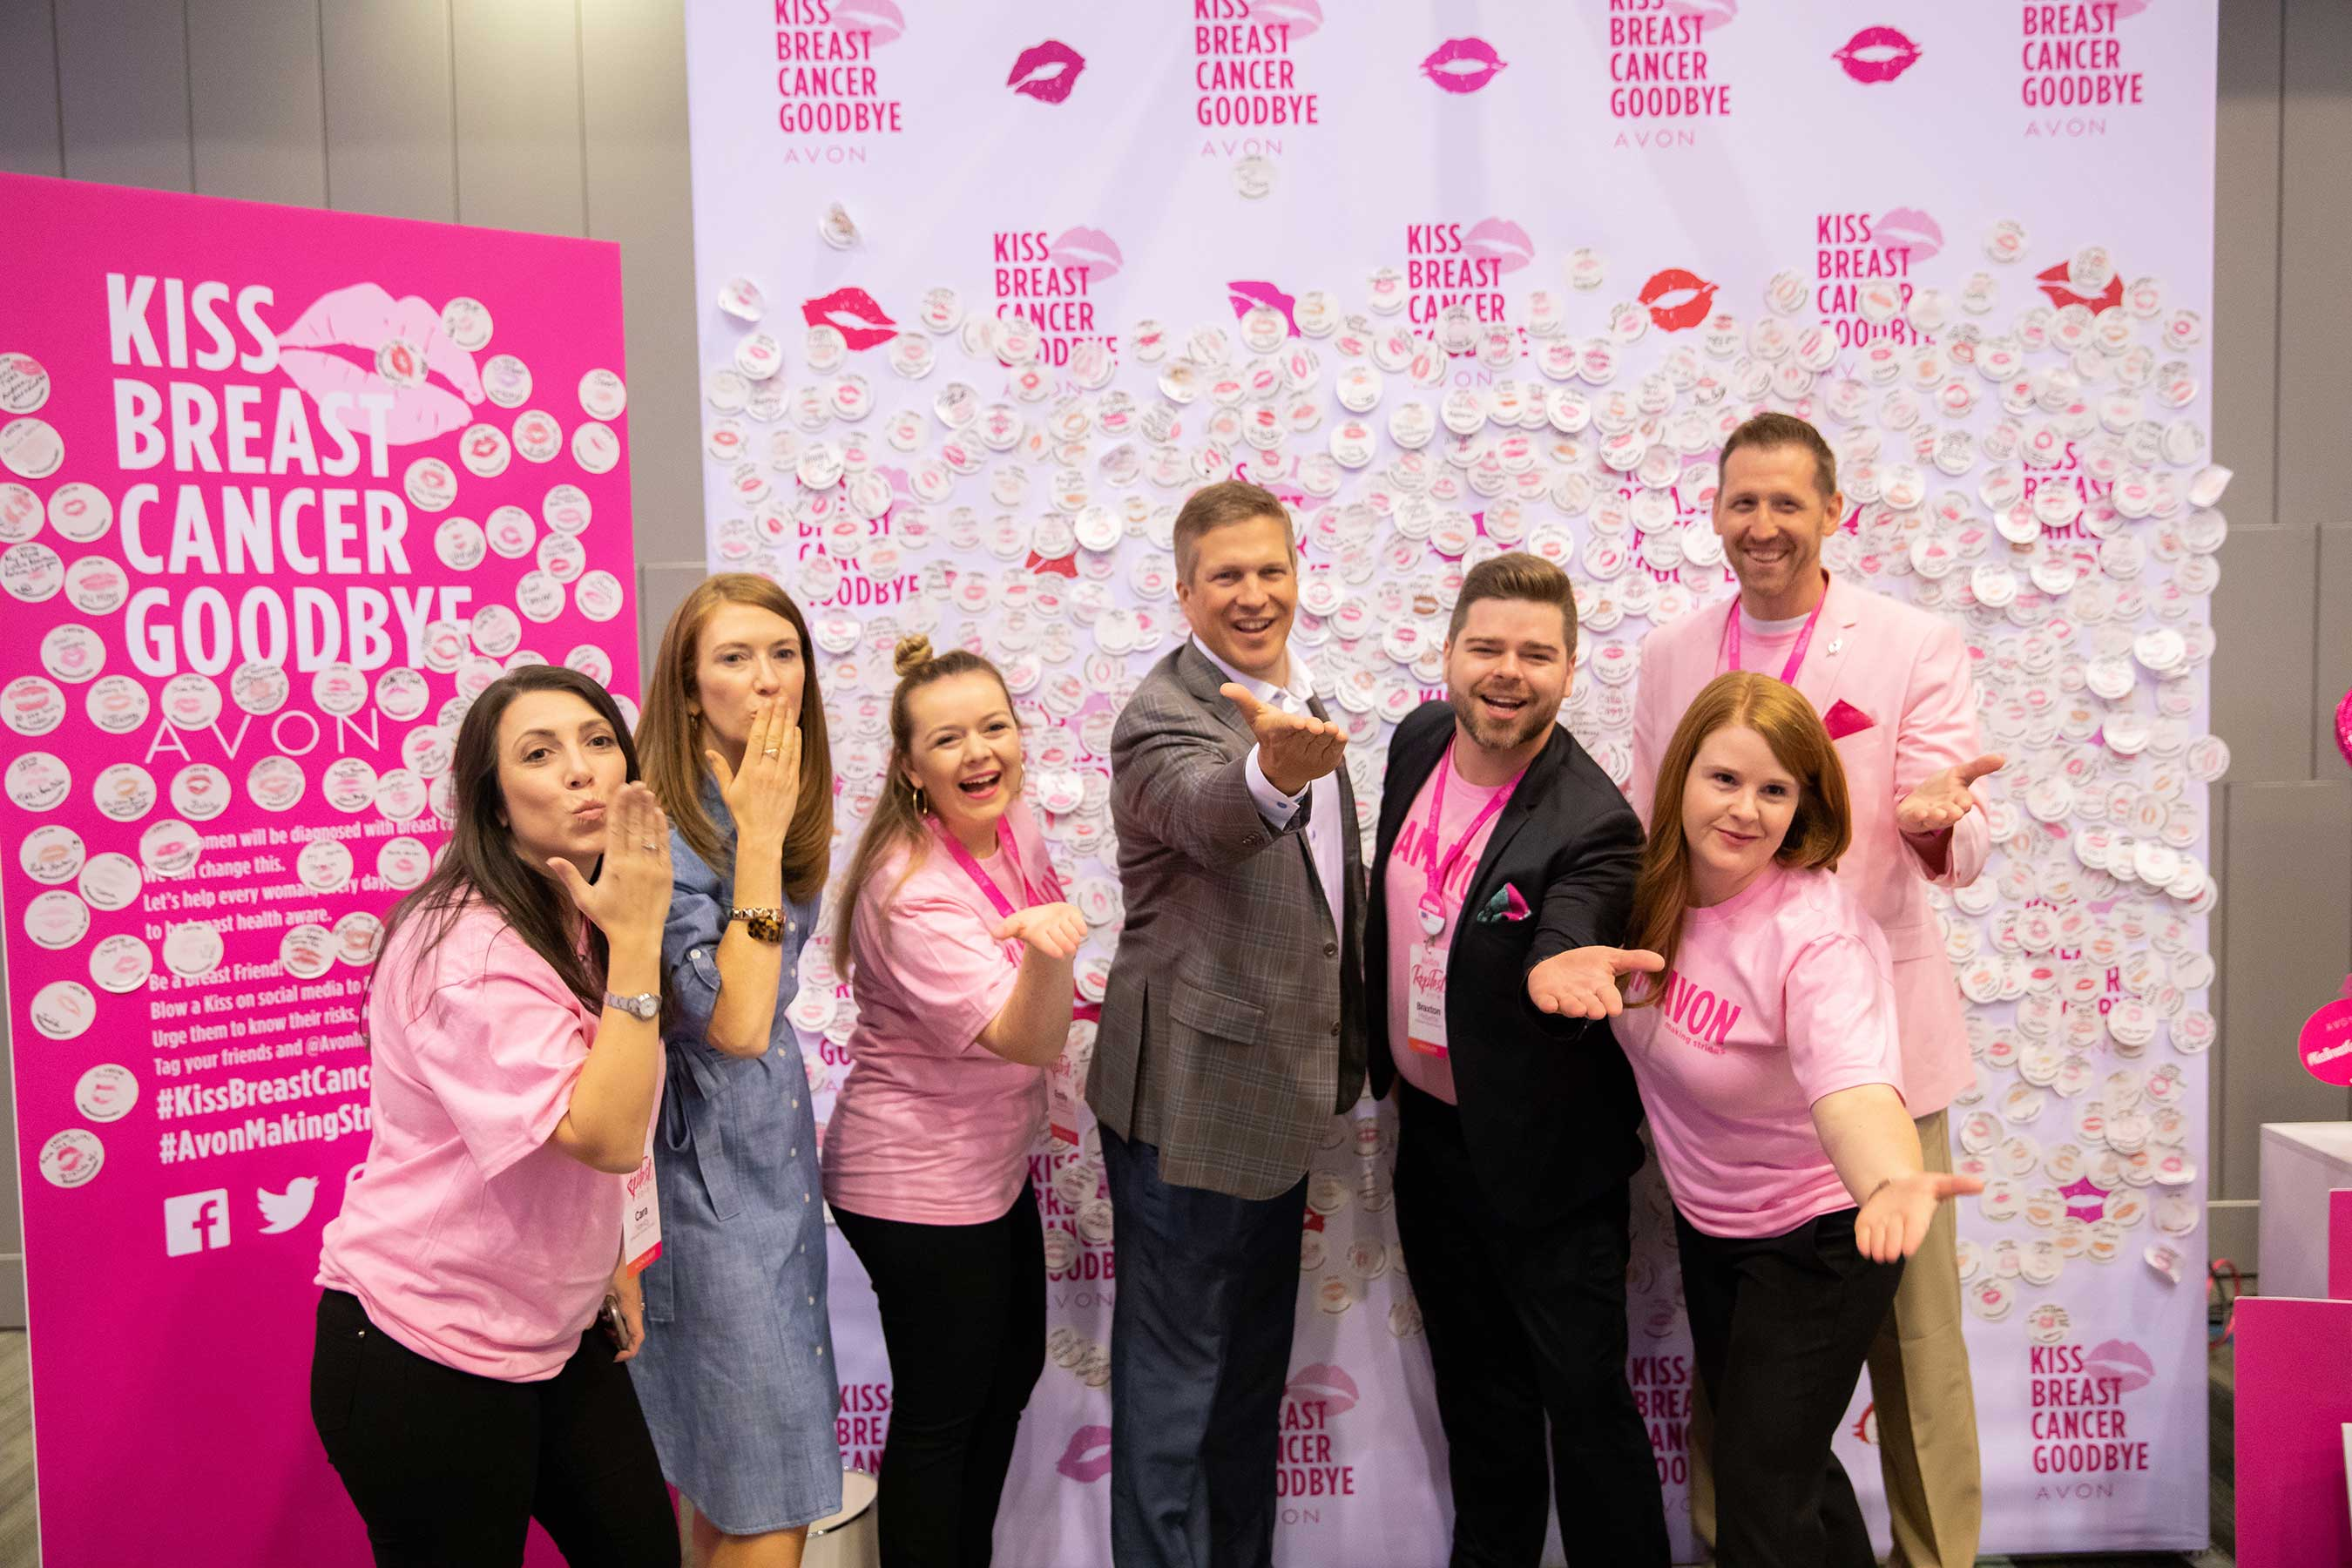 Avon and the American Cancer Society team up to launch the Kiss Breast Cancer Goodbye Campaign in support of American Cancer Society Making Strides Against Breast Cancer.